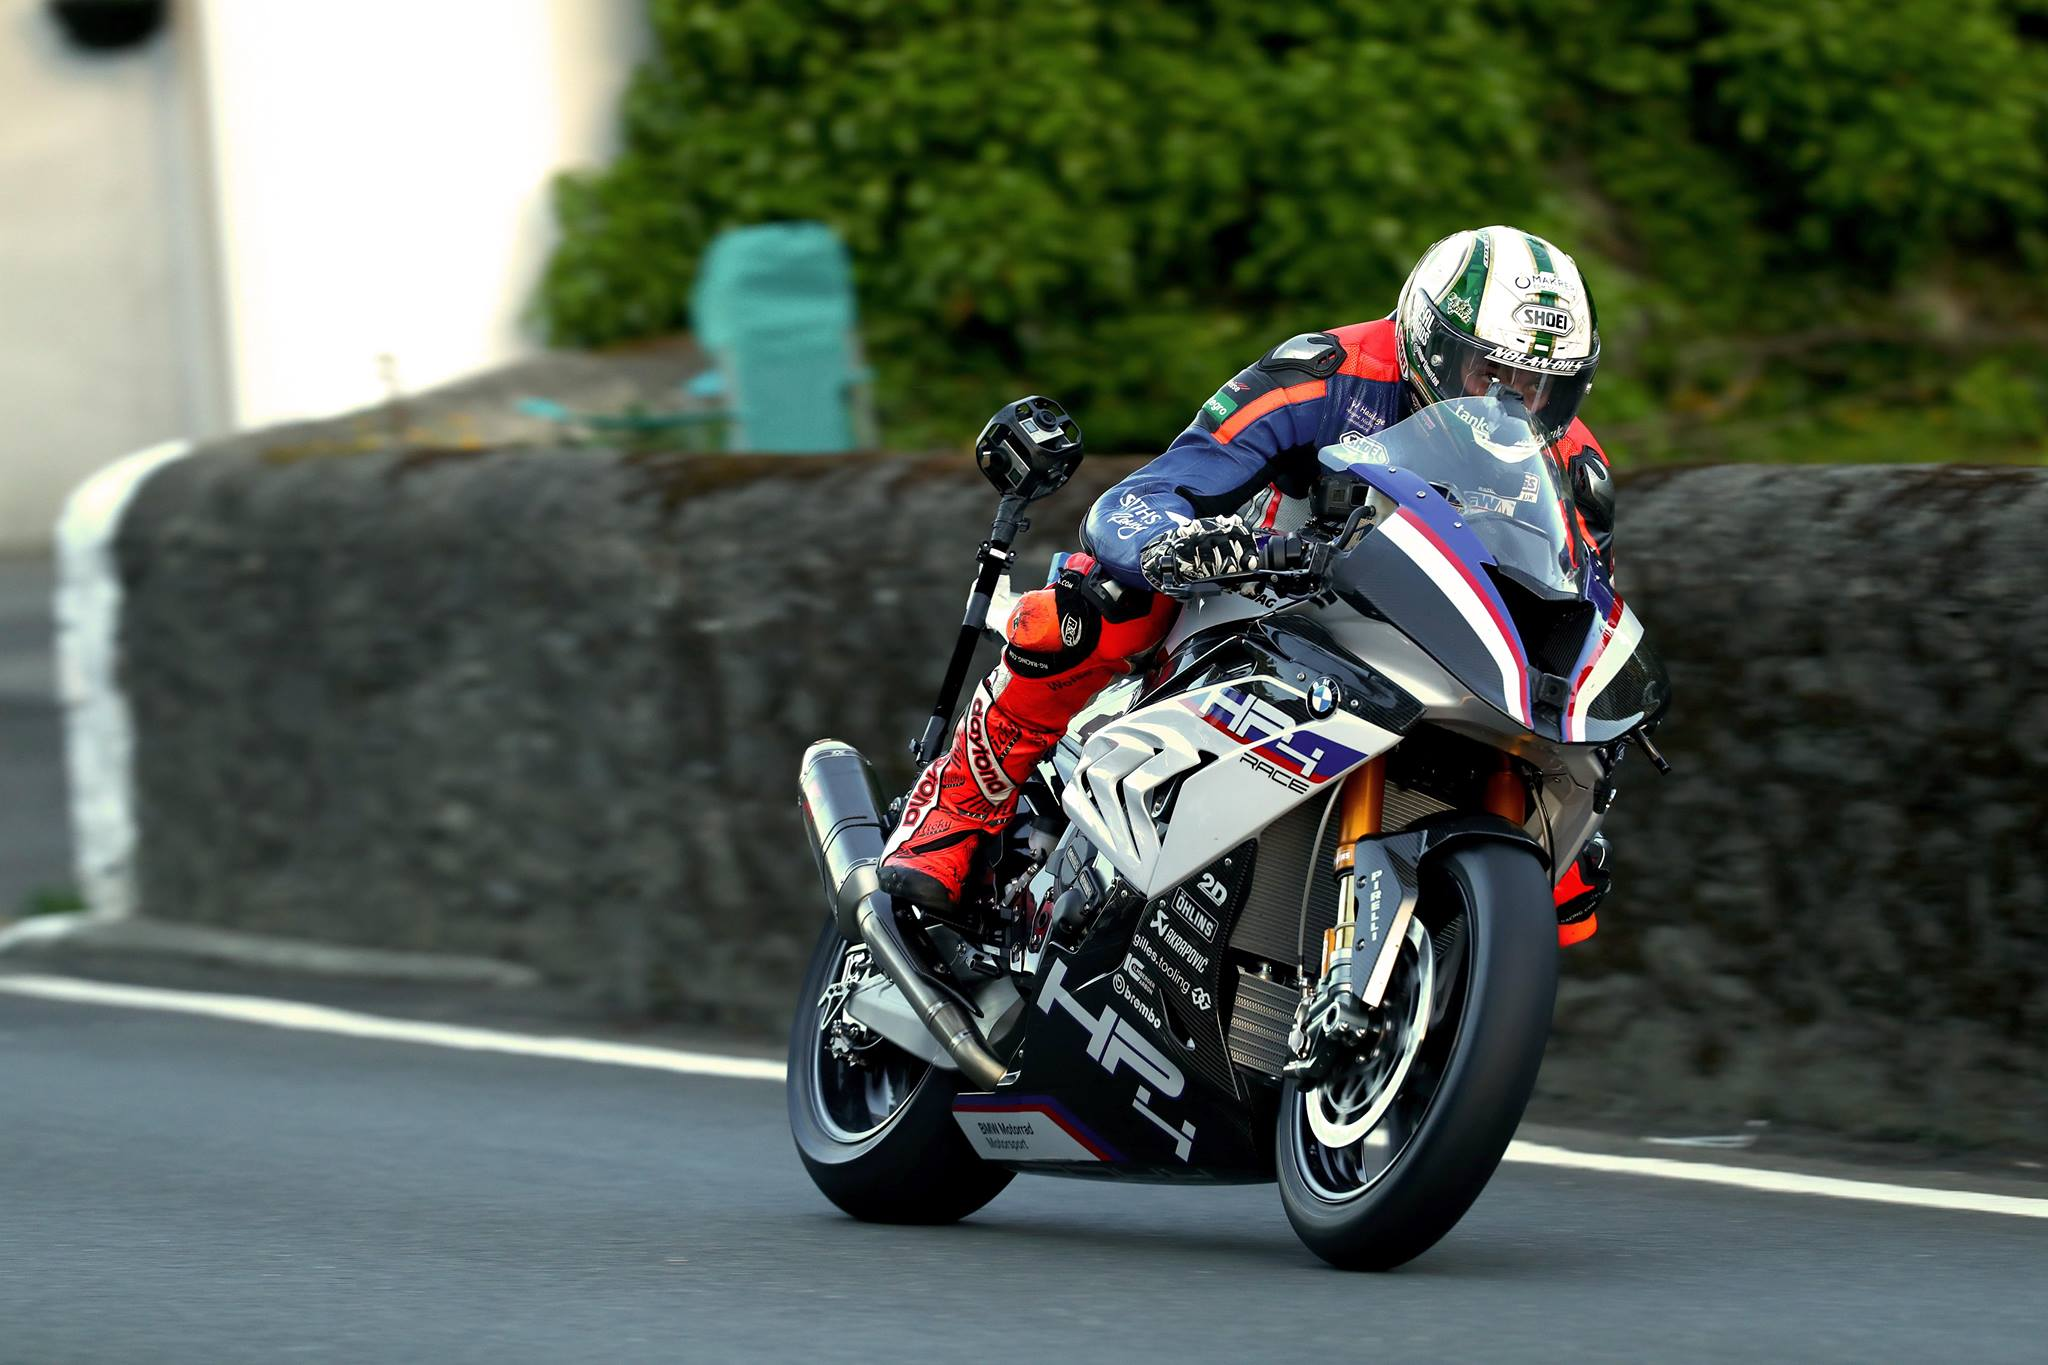 Peter Hickman Puts The Bmw Hp4 Race Through Its Paces At